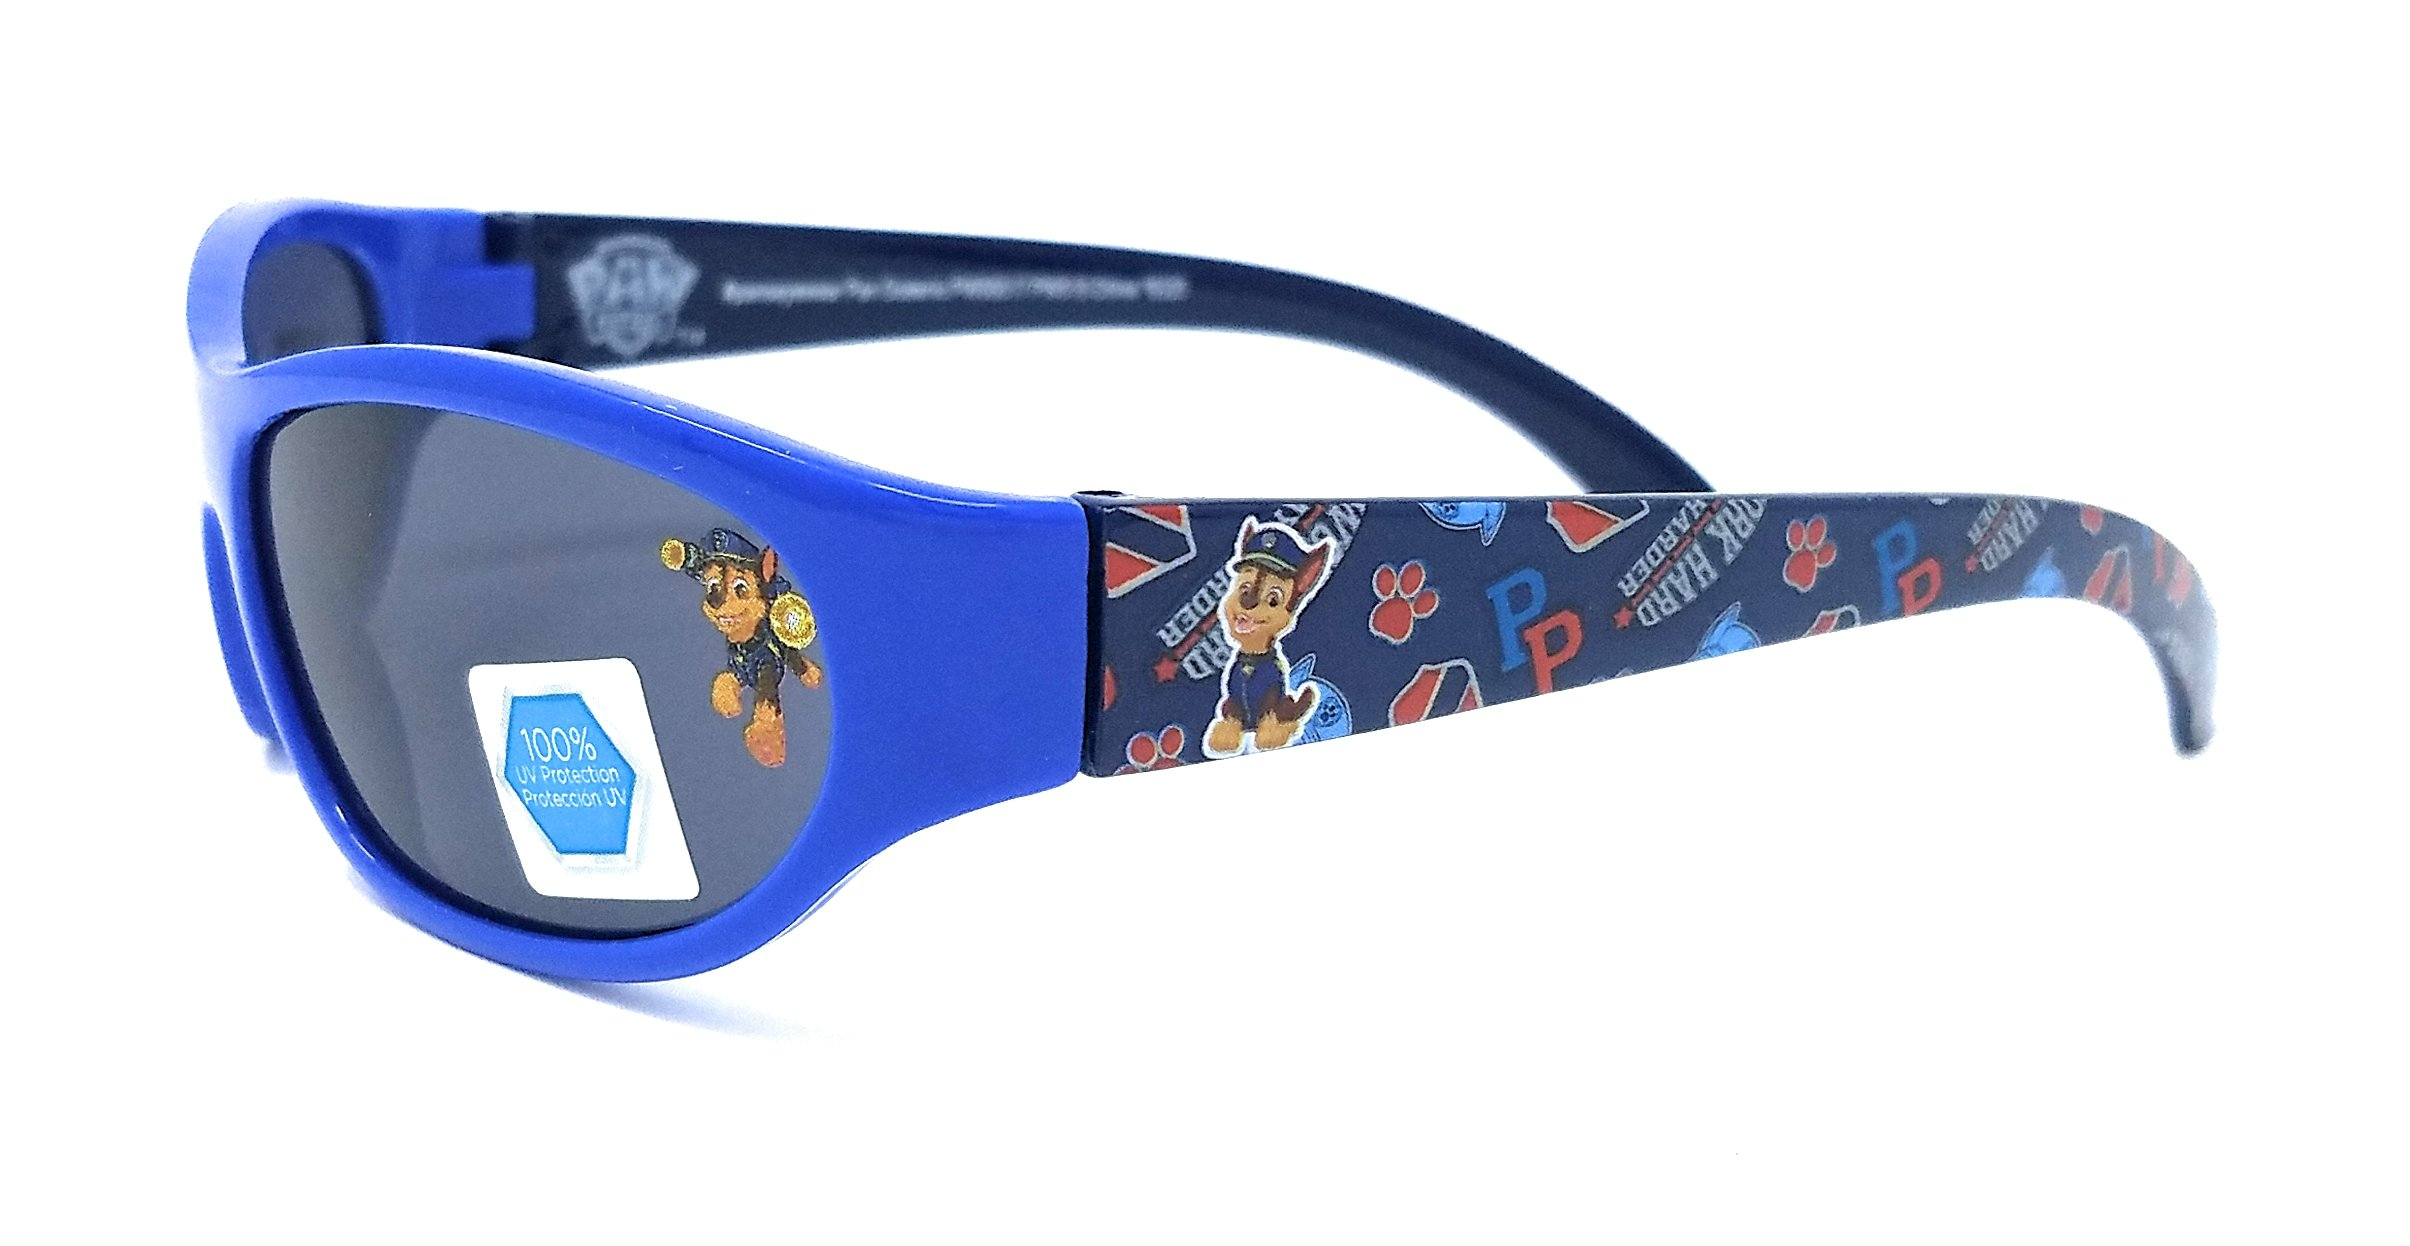 Nickelodeon Paw Patrol Boy's ''Chase'' Sunglasses in Blue - 100% UV Protection